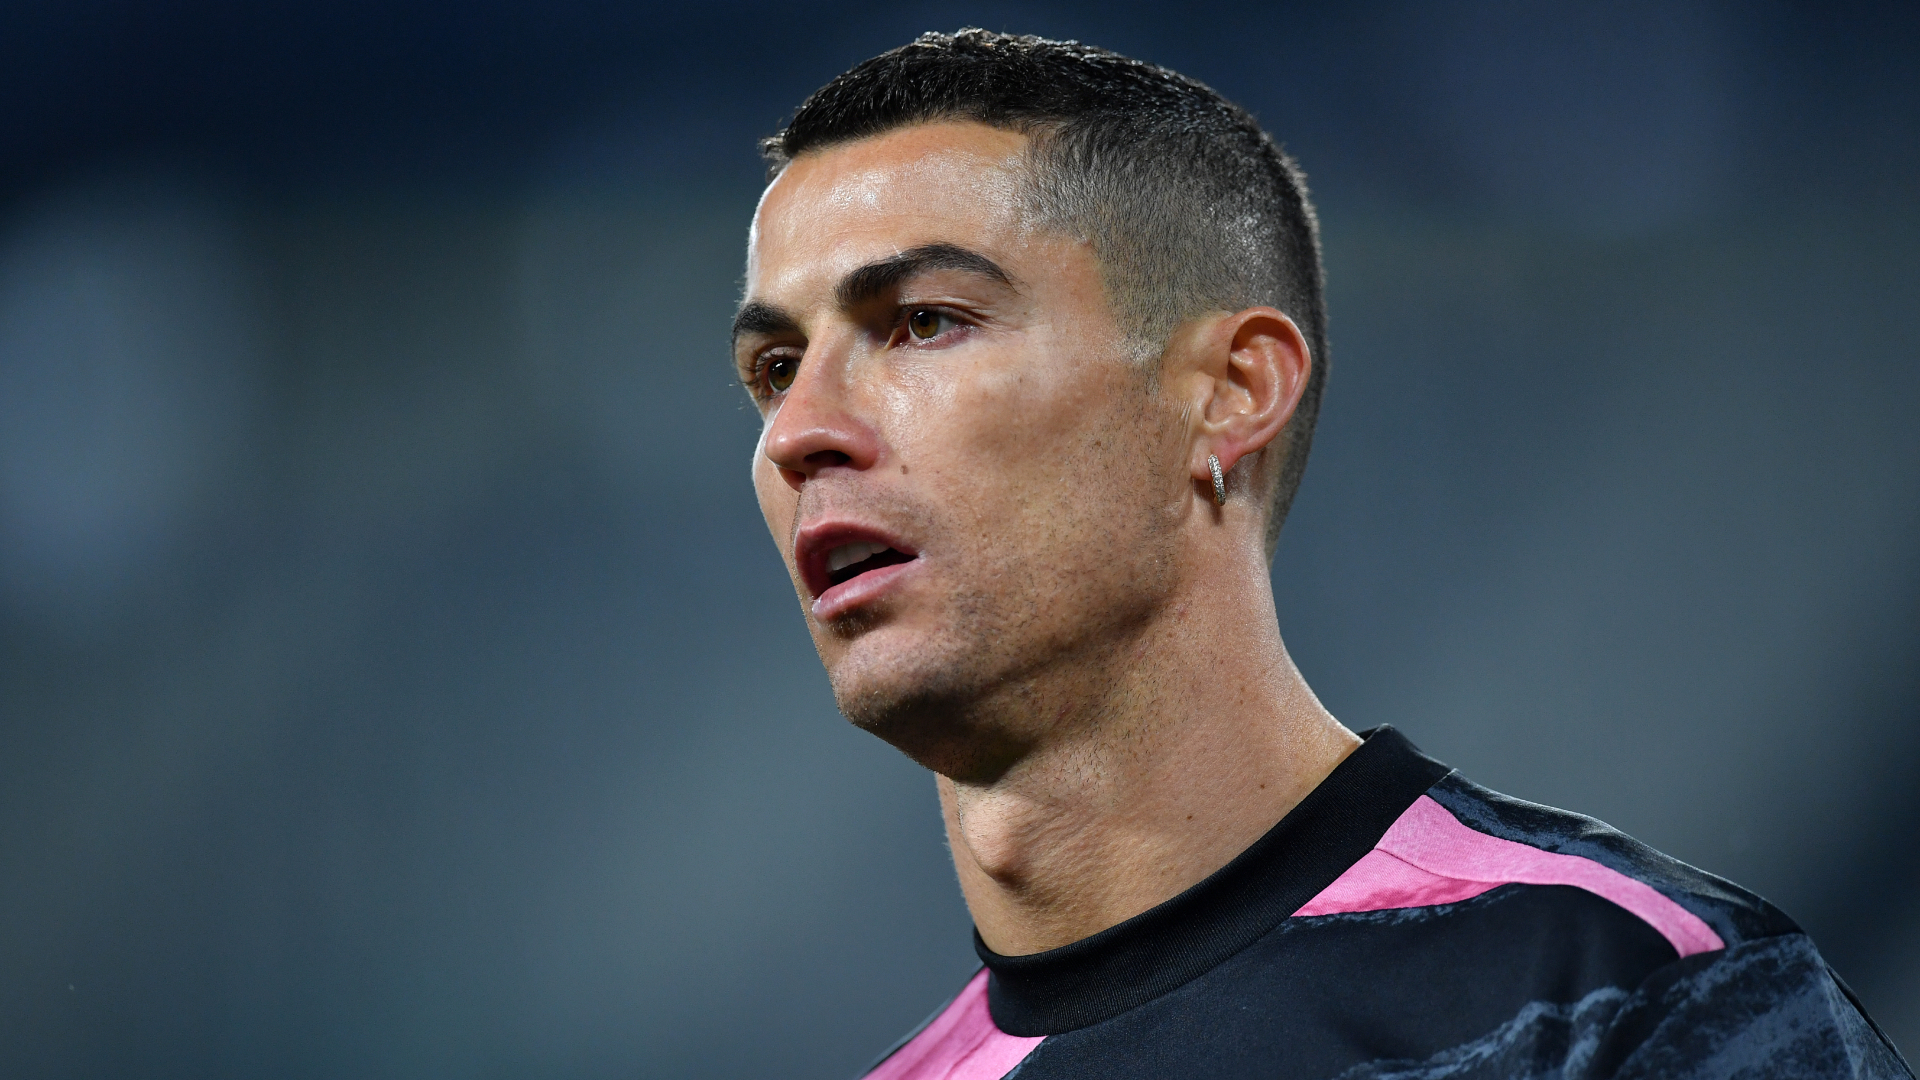 'Age doesn't matter' - Juventus star Ronaldo hoping to play for 'many years' more